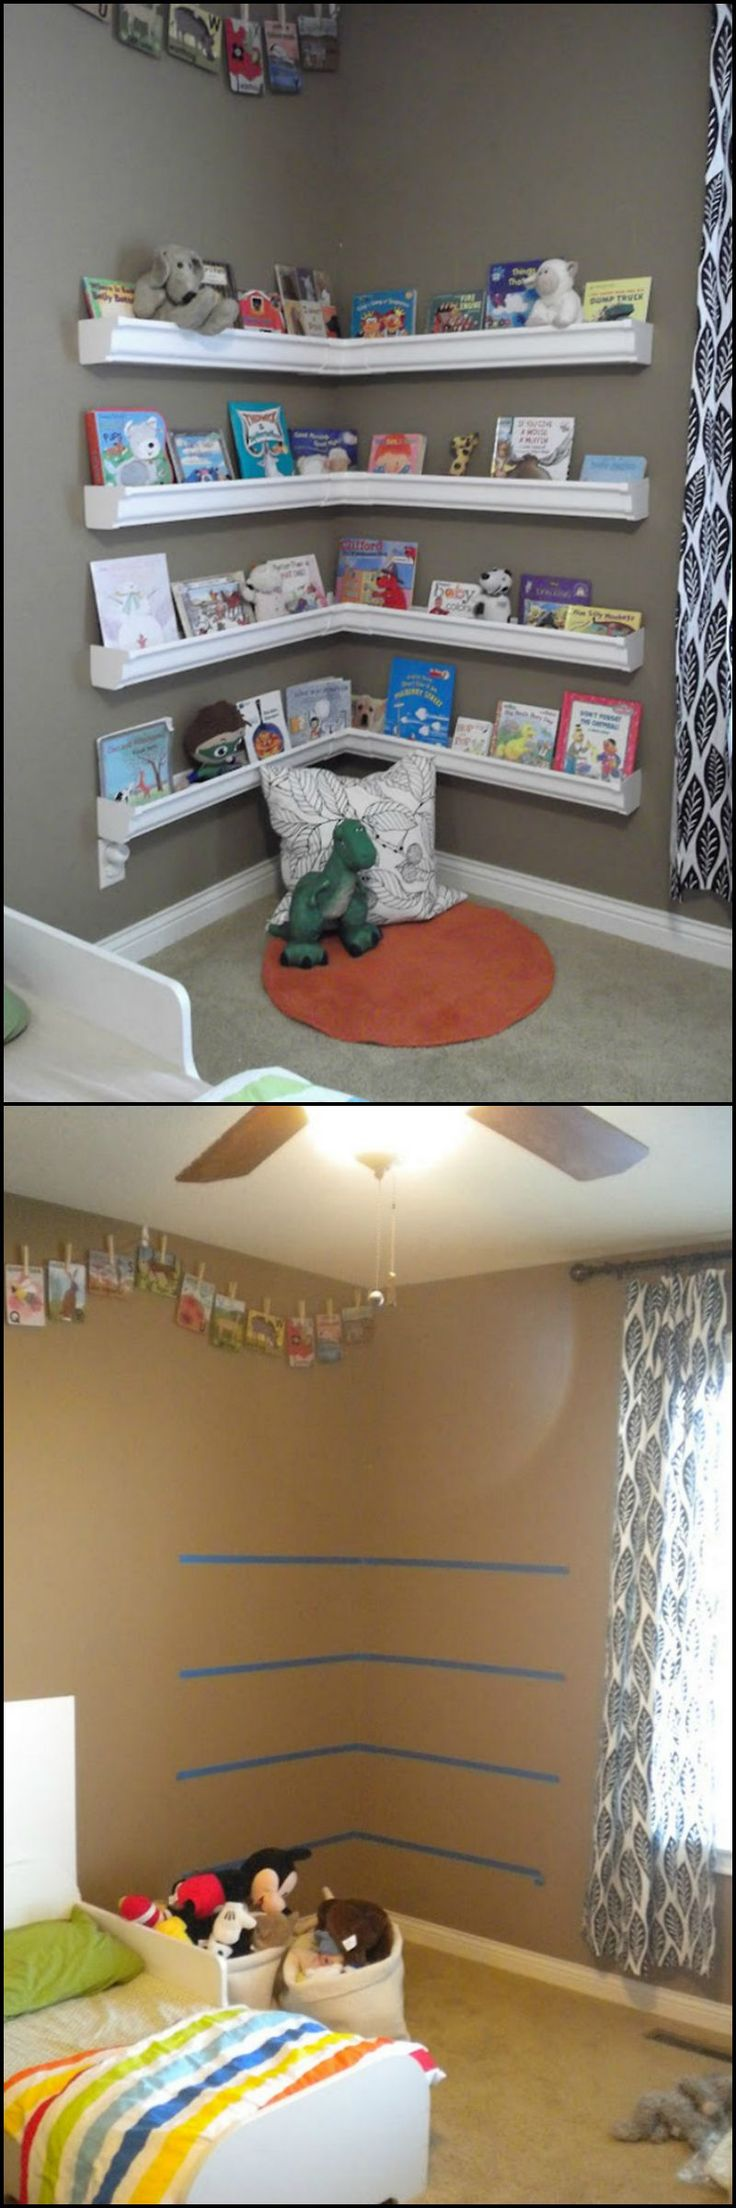 How To Make Bookshelves From Repurposed Gutter  http://theownerbuildernetwork.co/i2tl  Now isn't this a clever way of making a simple and cheap bookshelf for the kids room.  It's also great for being a space-saving bookshelf. This way, the kids have more space to run around and play in the room.